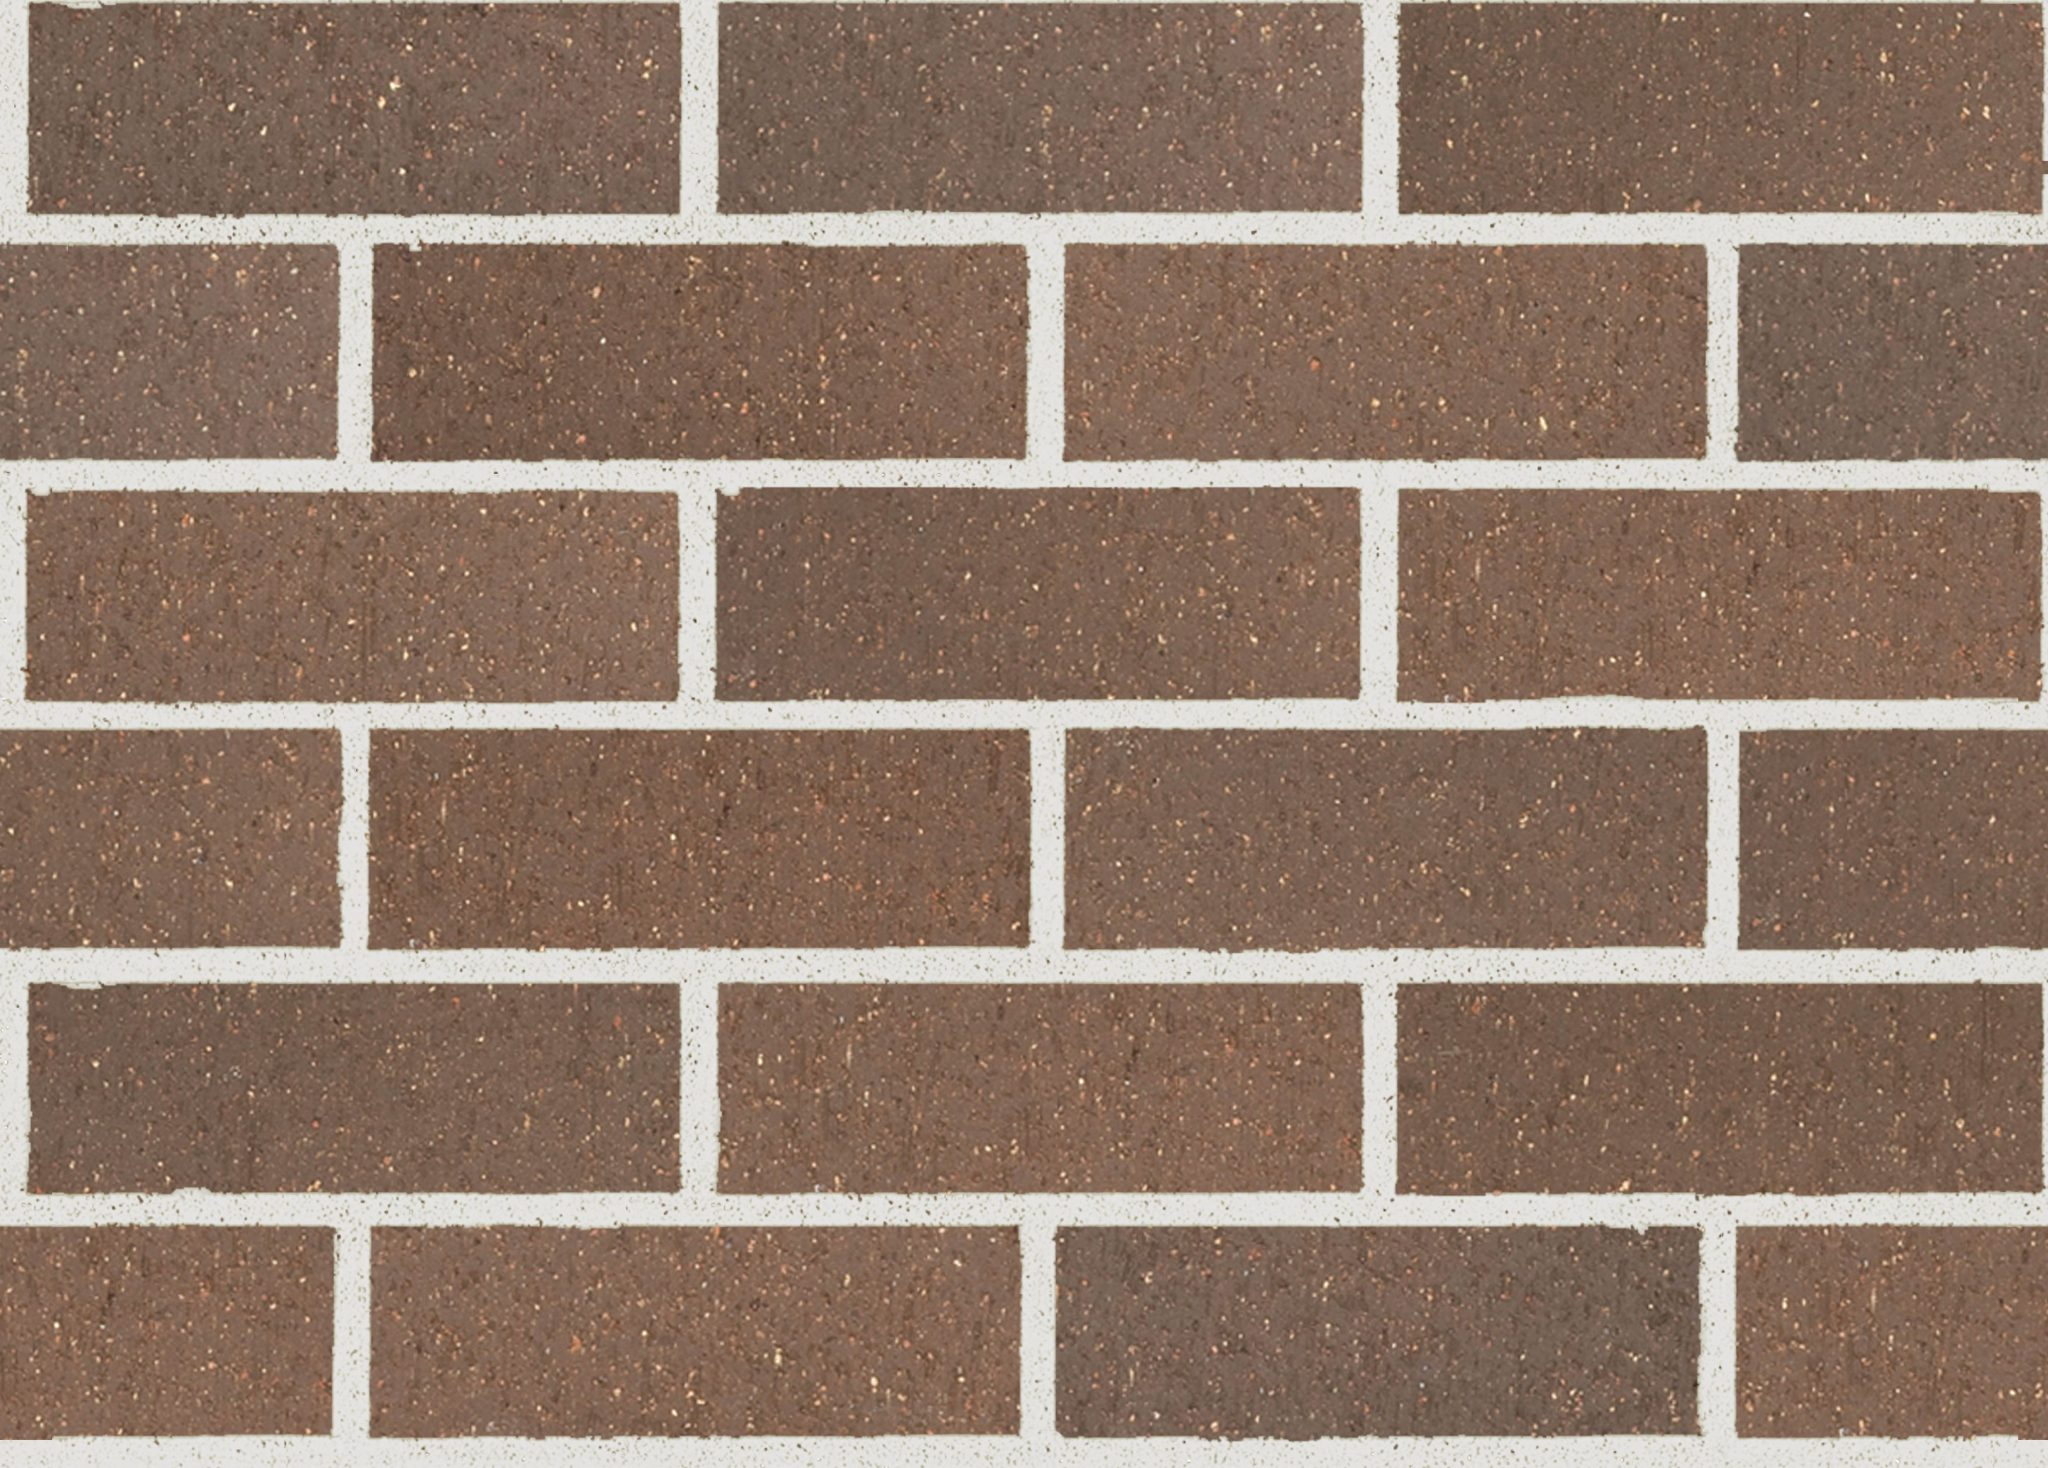 MetropolisTopaz230x76-110-240 - NSW Bricks